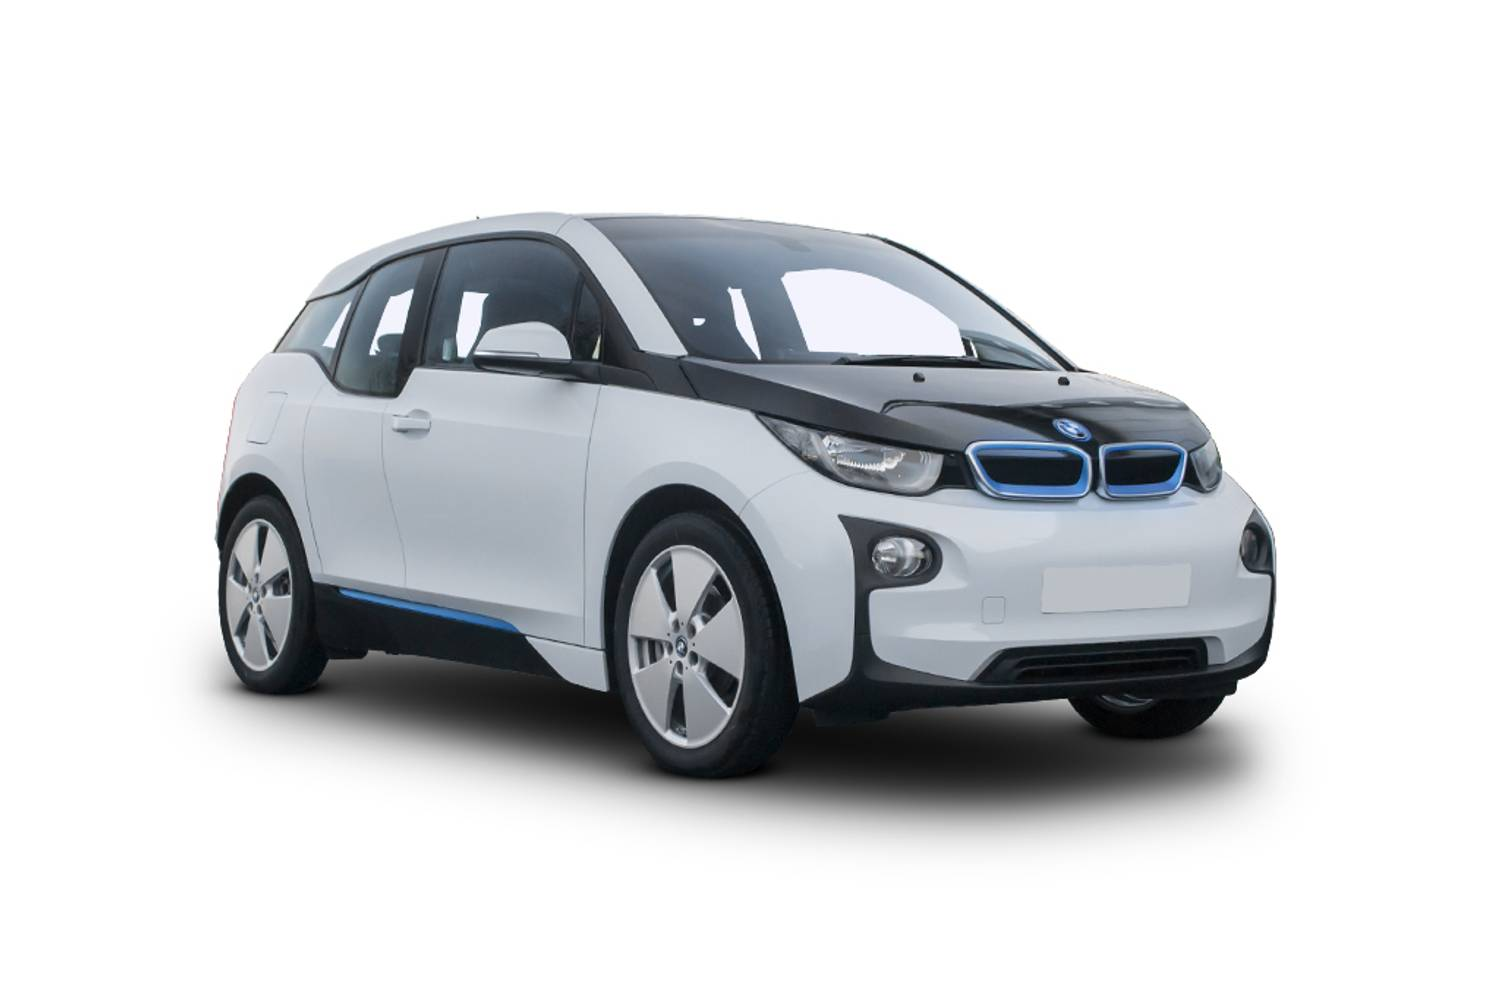 New Bmw I3 Hatchback 94ah 5 Door Auto 2016 For Sale